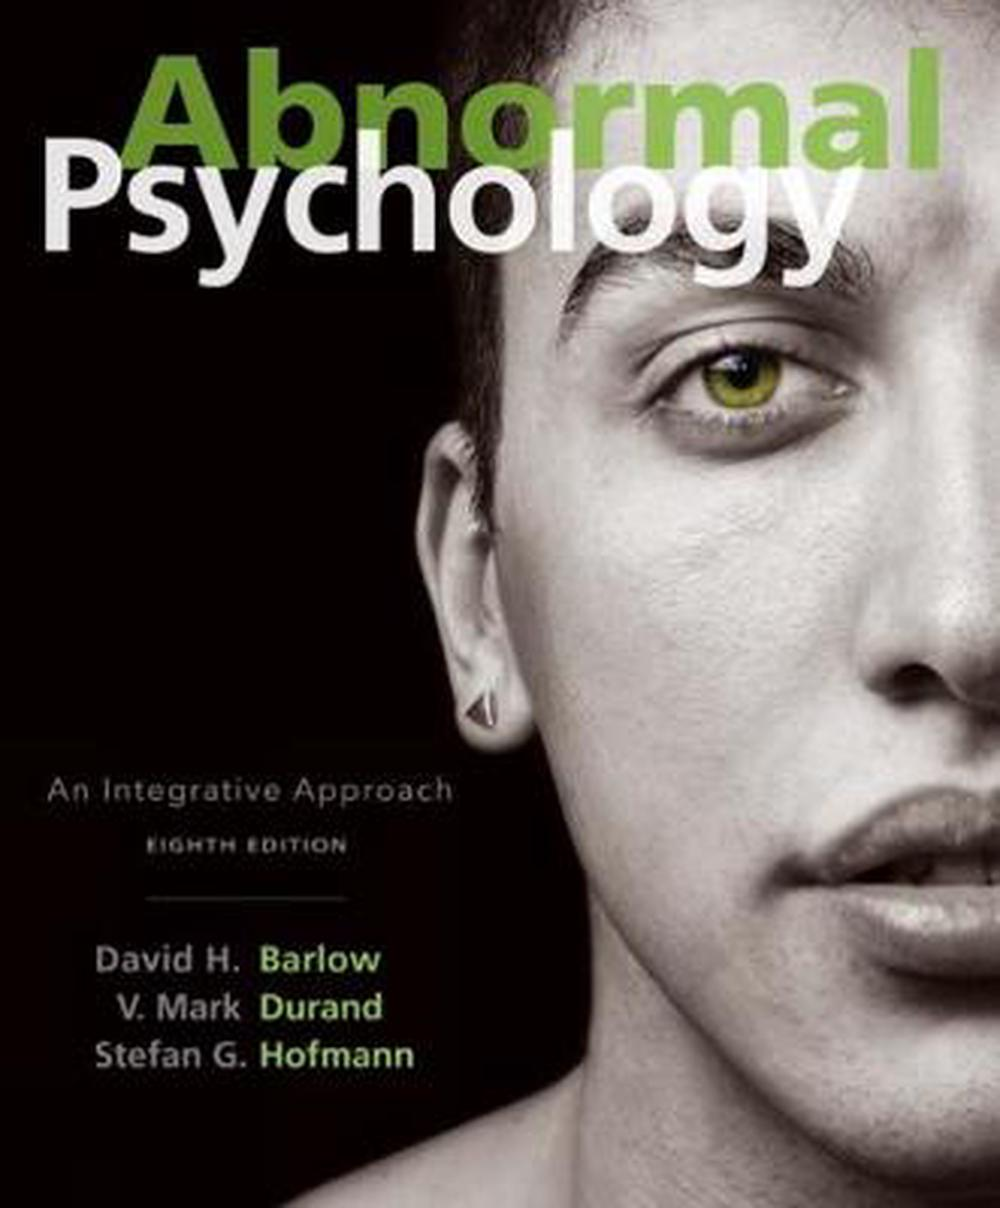 Abnormal Psychology, 8th Edition